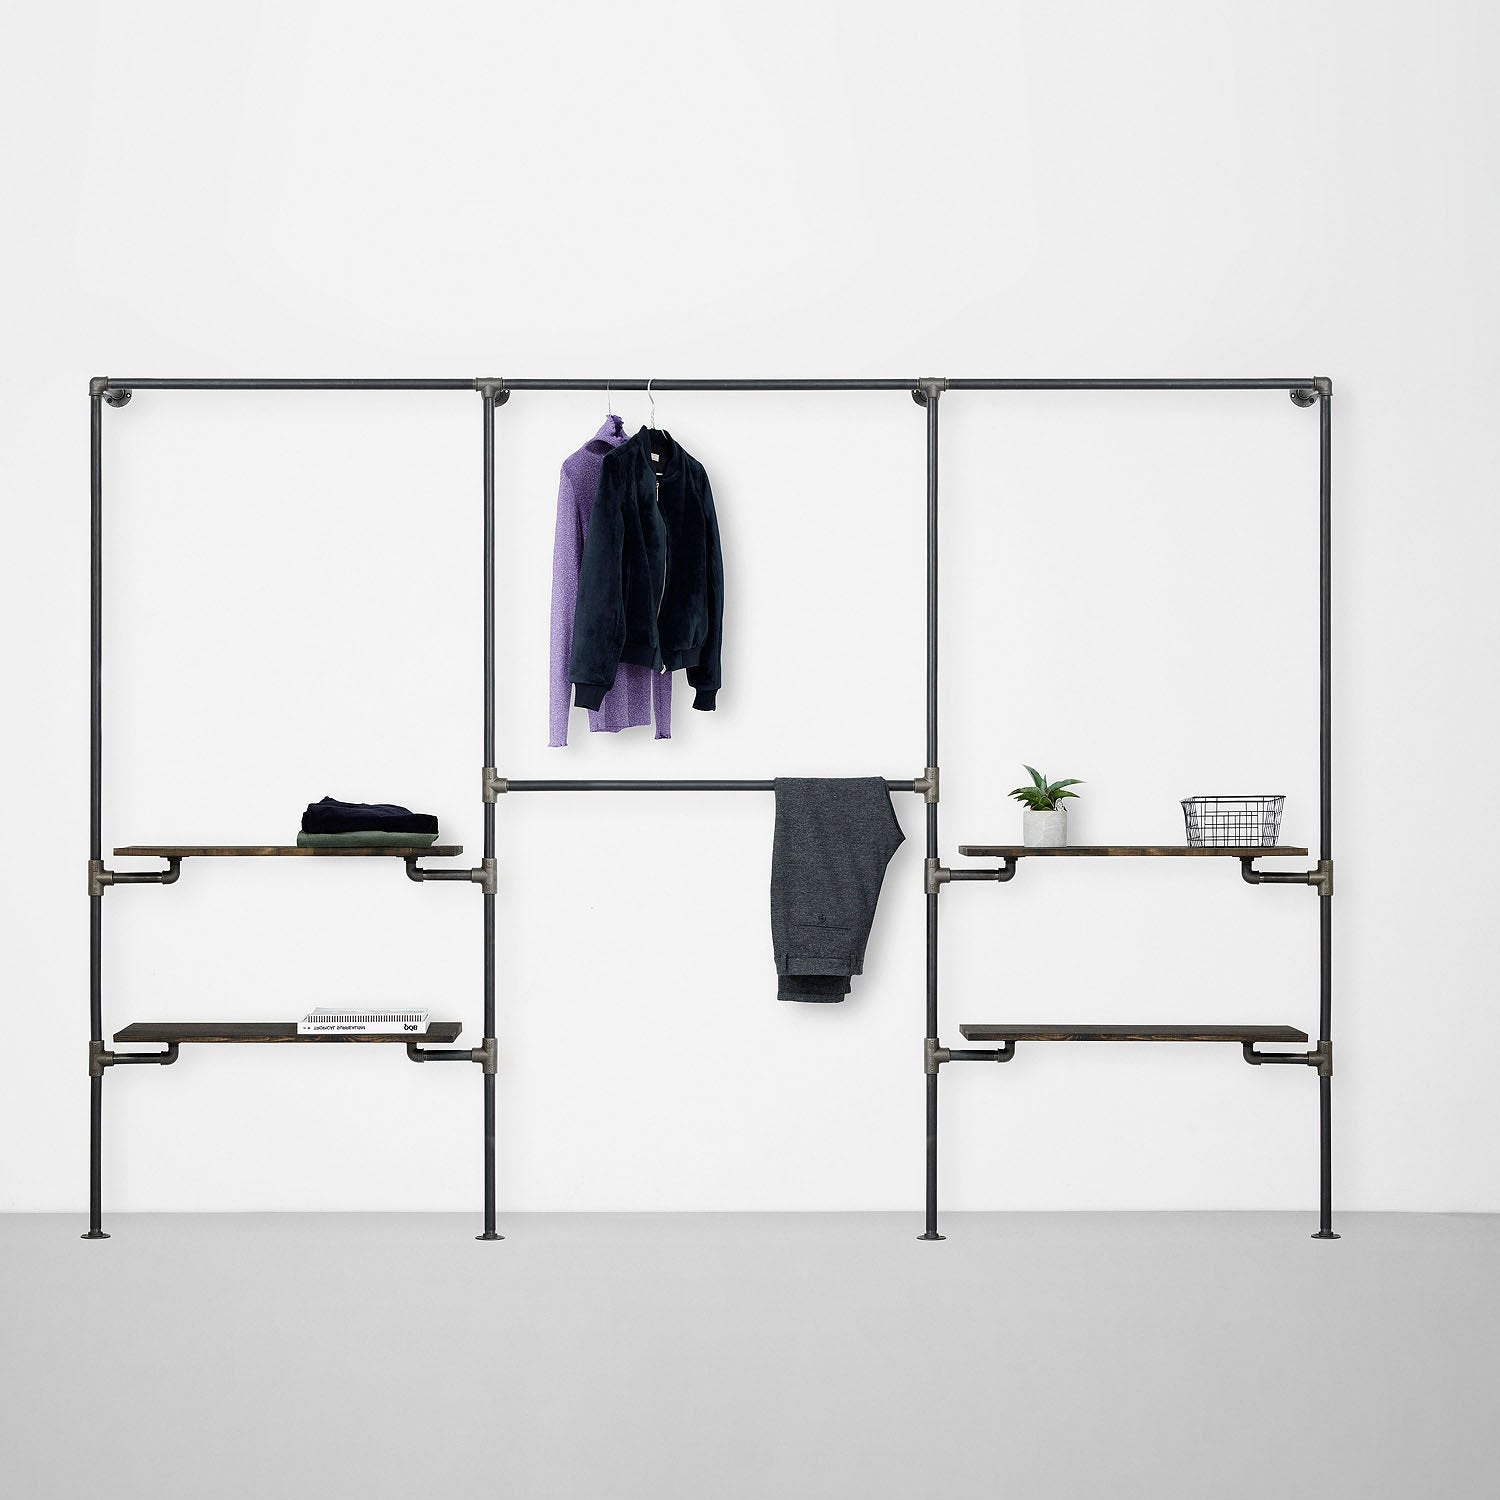 The Walk-In 3 row wardrobe system - 1 rail & 2 shelves / 2 rails/ 1 rail & 2 shelves